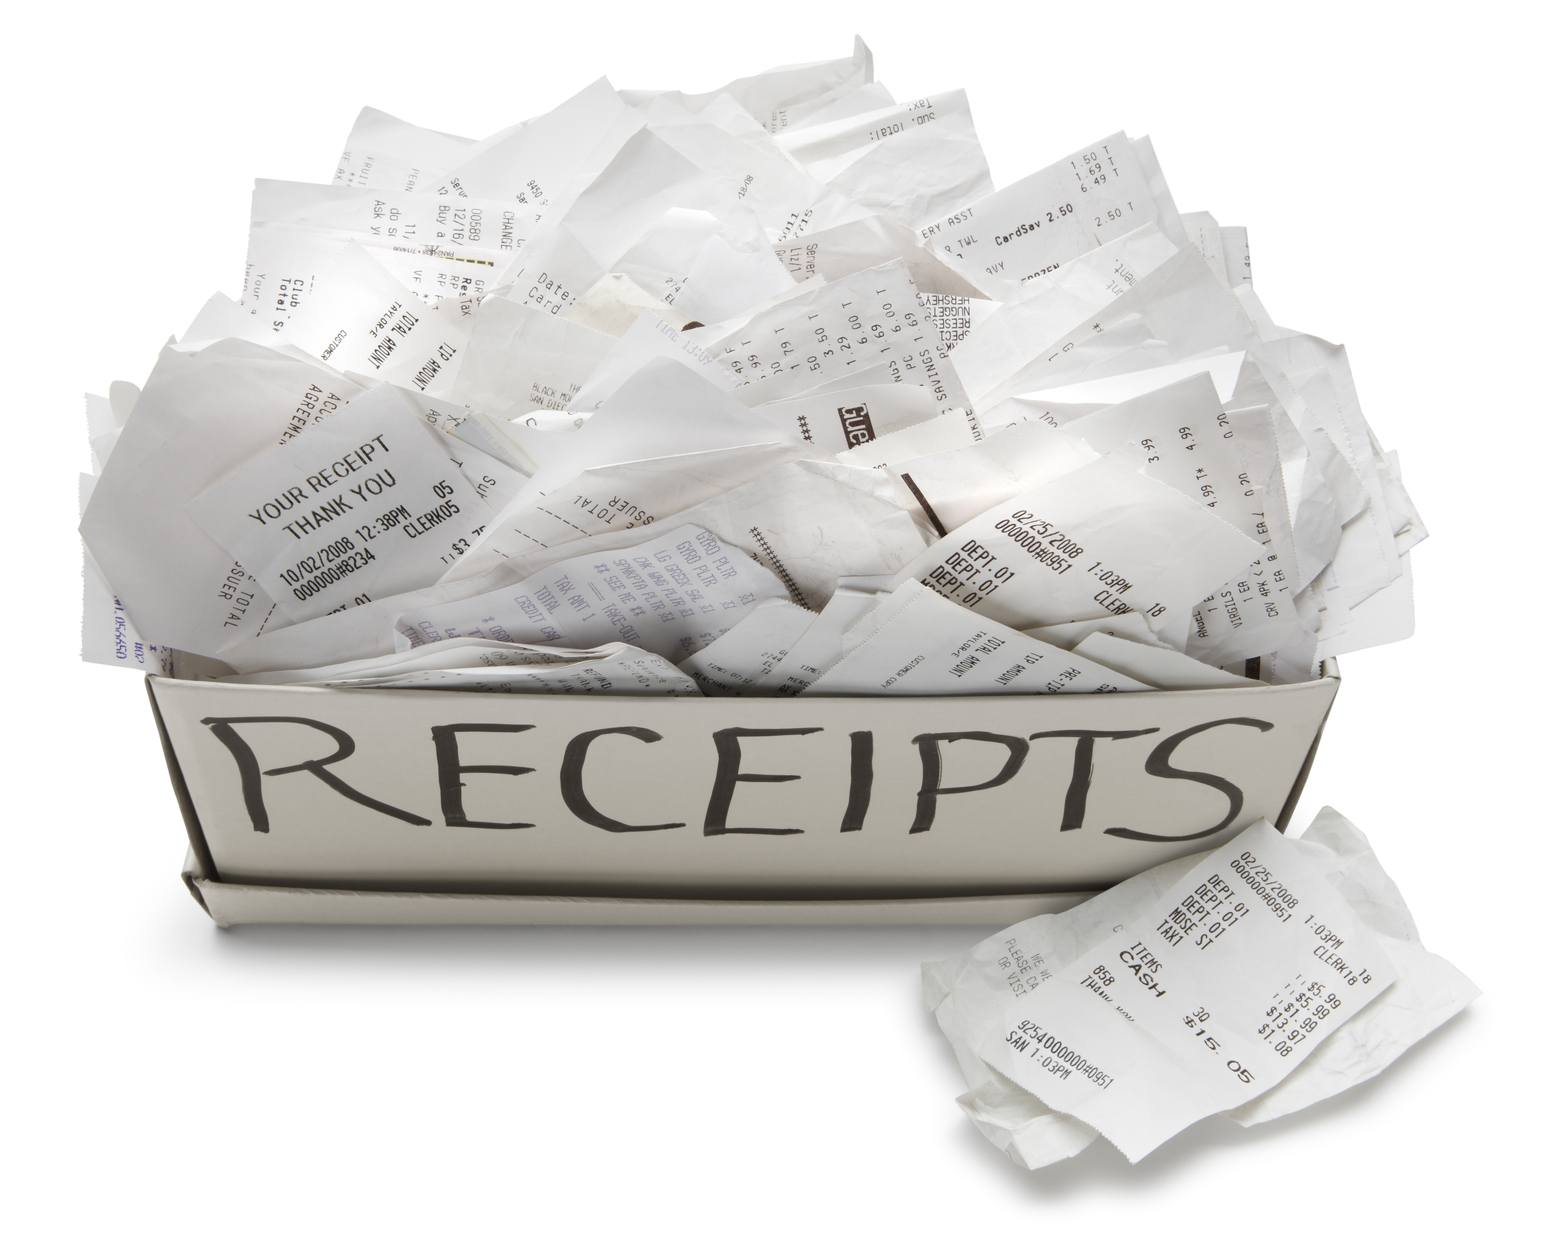 A look at a bad filing system.